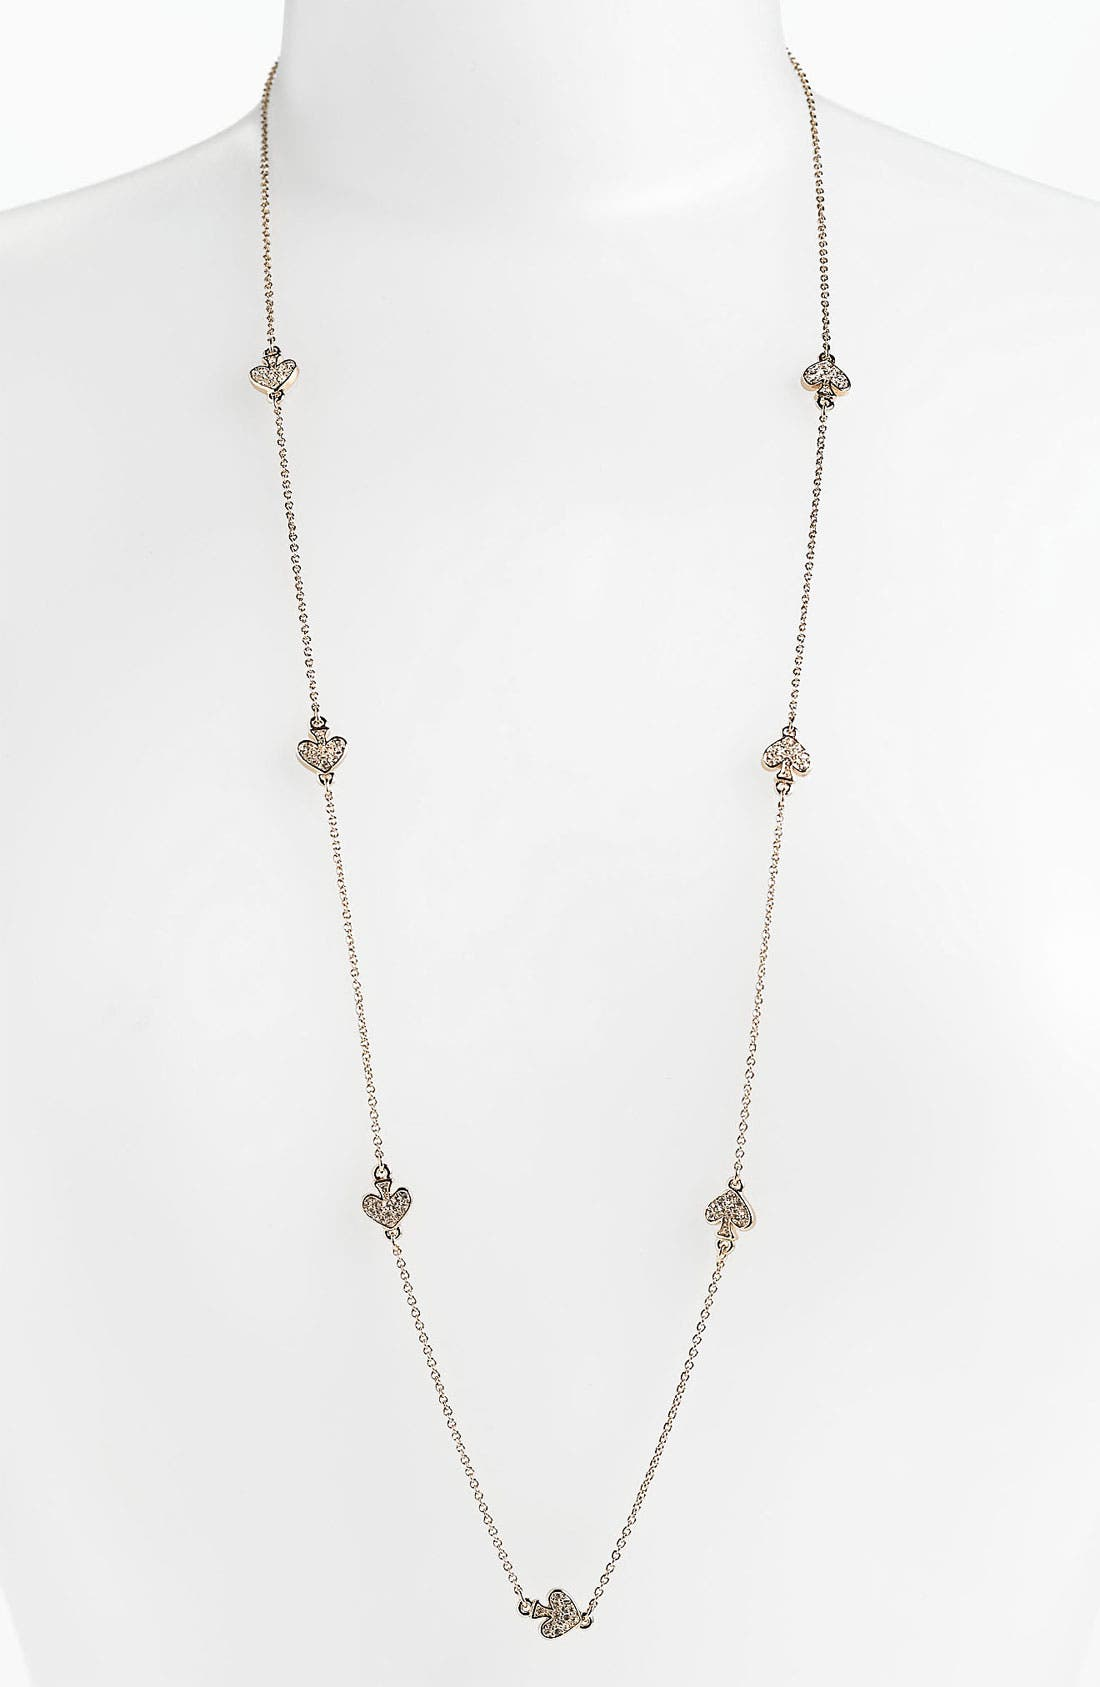 Main Image - kate spade new york 'spade to spade' long station necklace